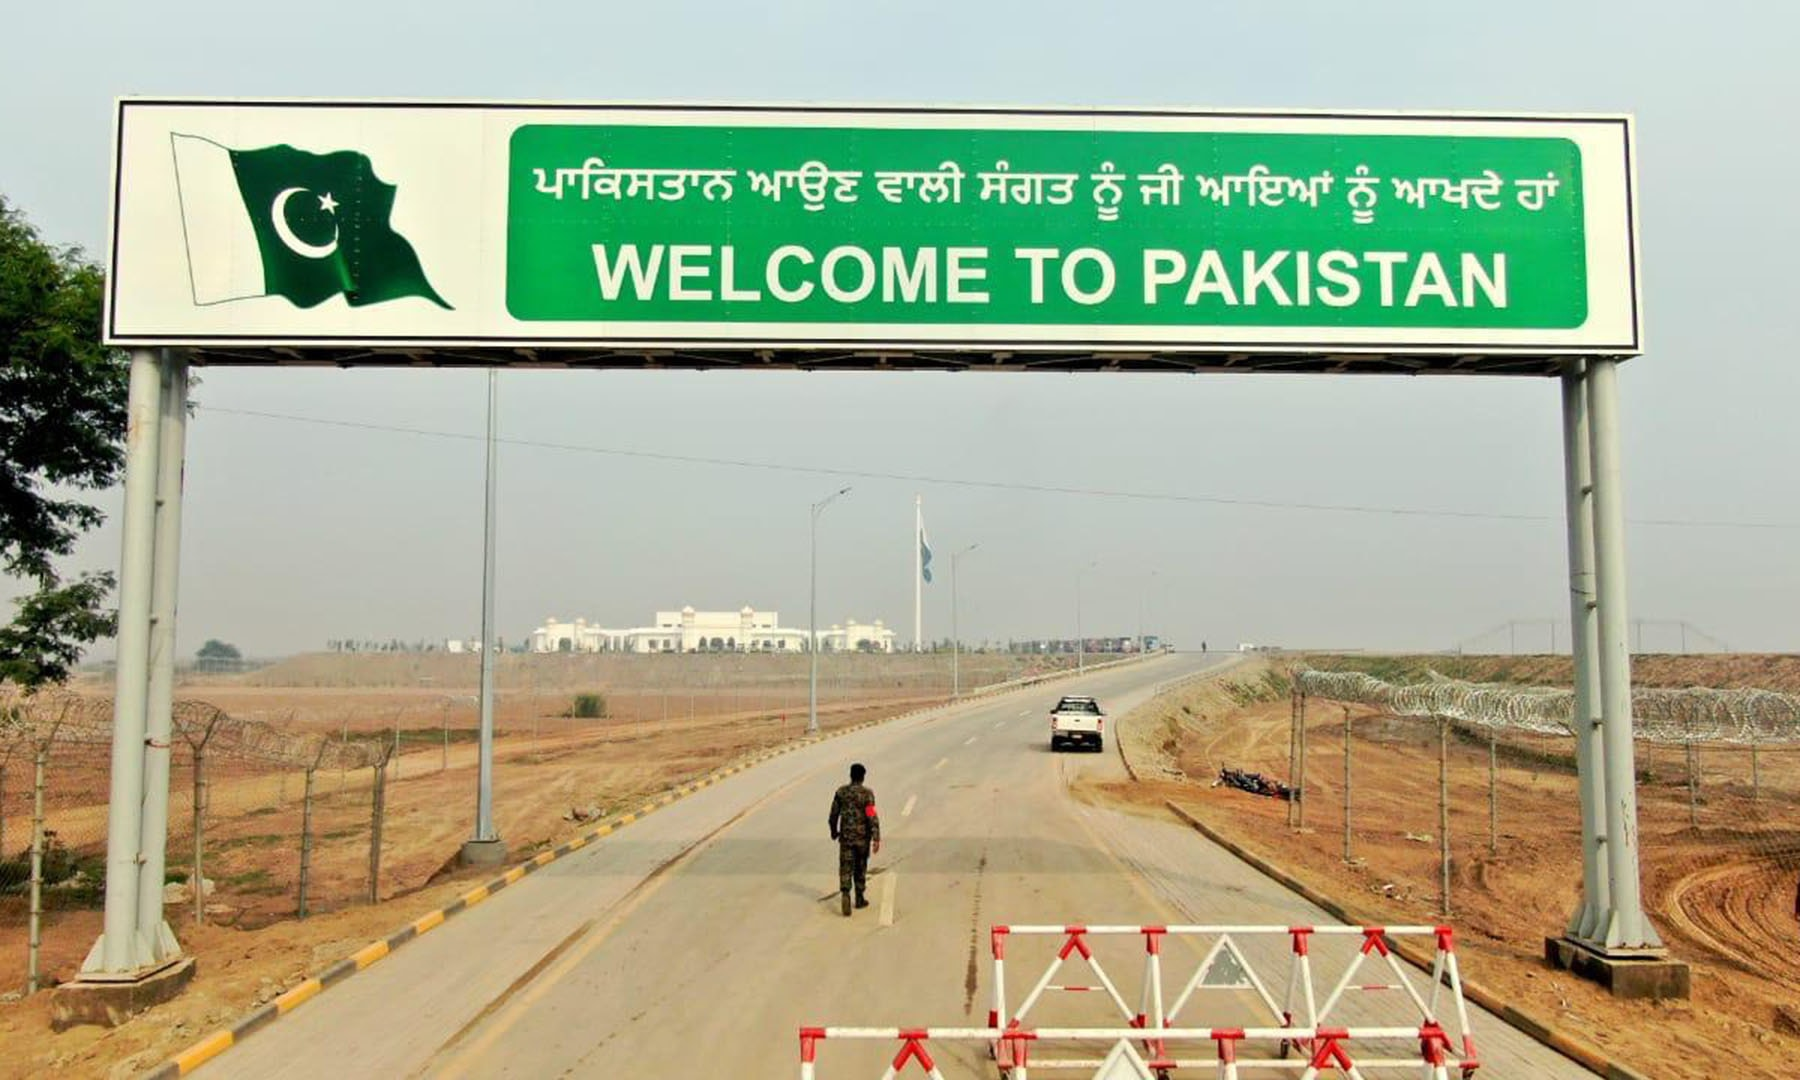 Kartarpur Corridor Opens. PM Thanks Imran Khan For